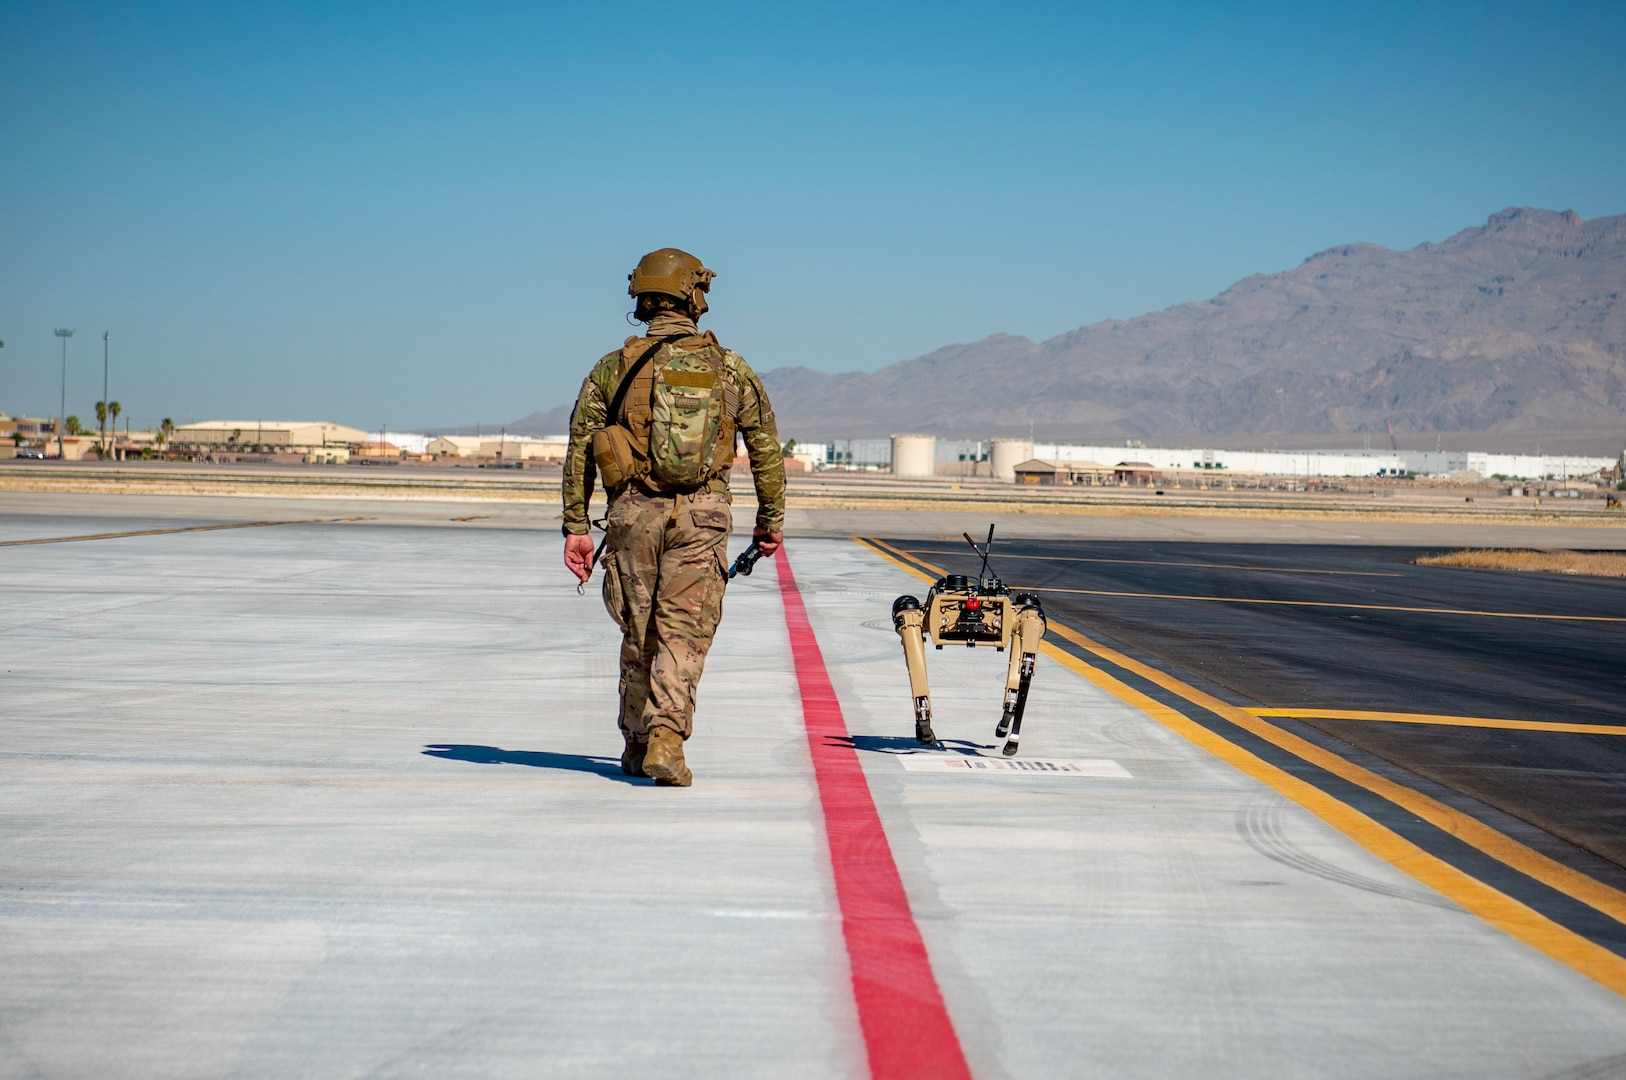 Airman with 321st Contingency Response Squadron security team patrols with Ghost Robotics Vision 60 prototype at simulated austere base during Advanced Battle Management System exercise on Nellis Air Force Base, Nevada, September 3, 2020 (U.S. Air Force/Zachary Rufus)